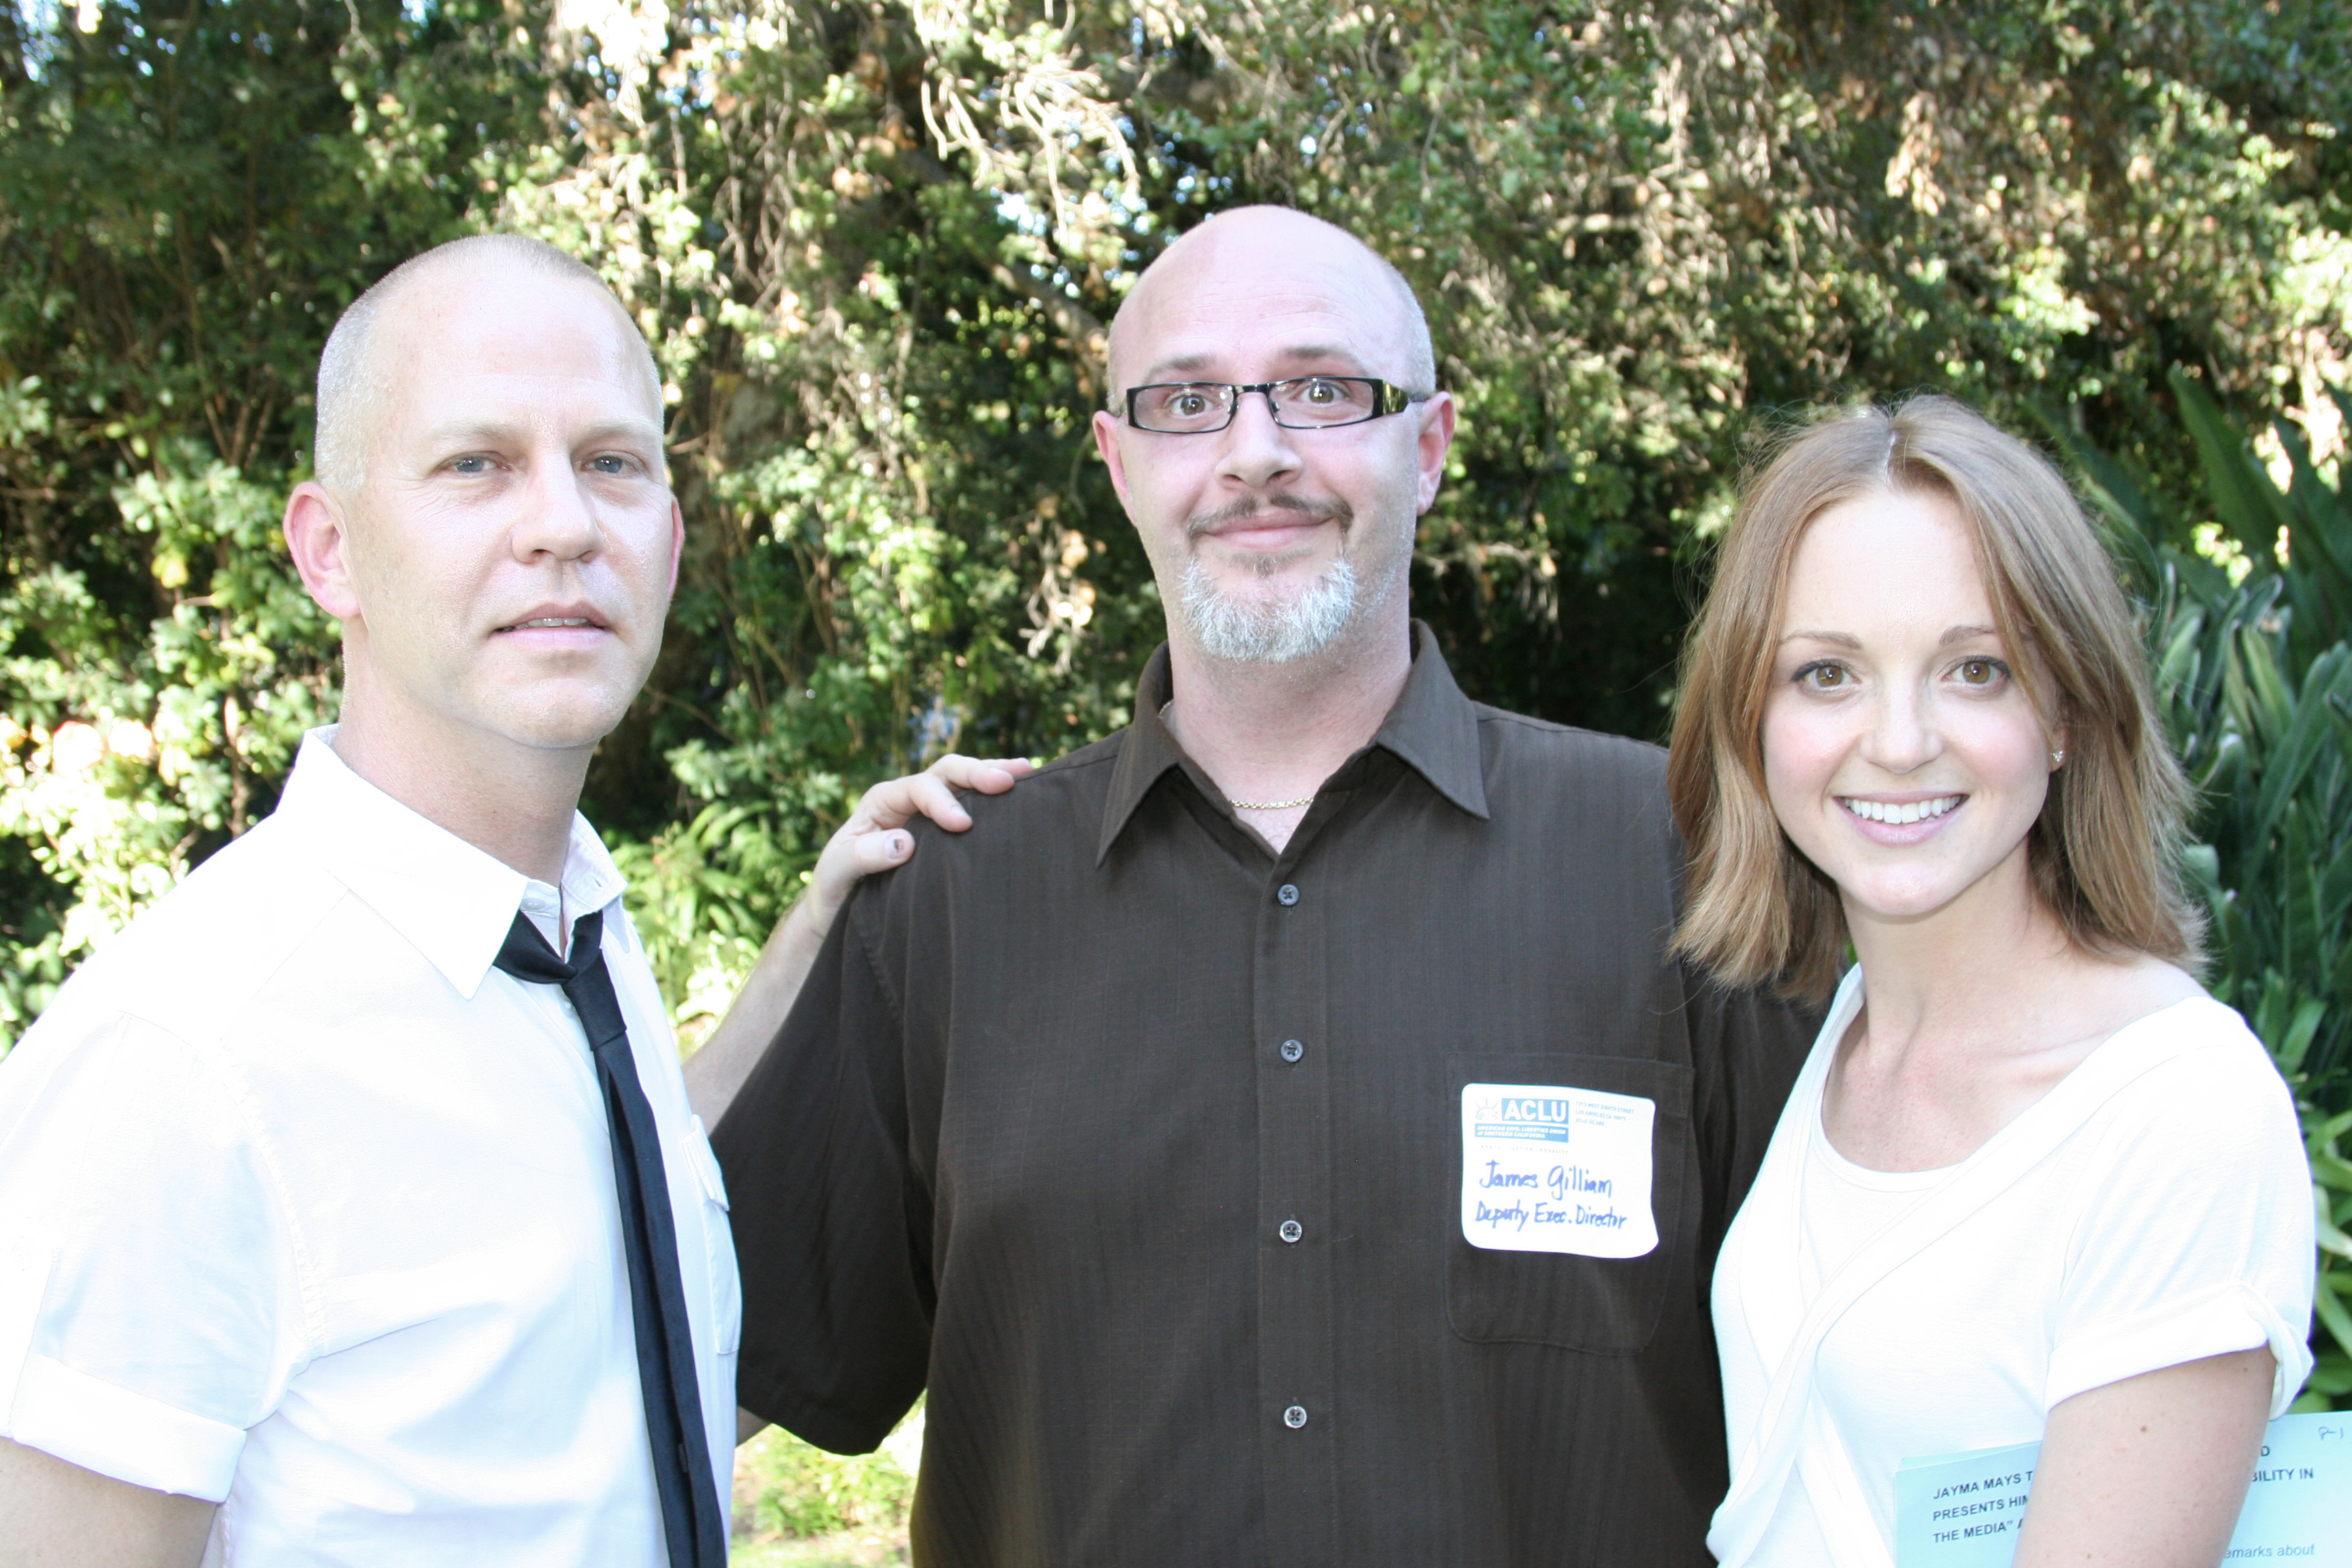 Ryan Murphy James Gilliam Jayma Mays Photo: ACLU Garden Party